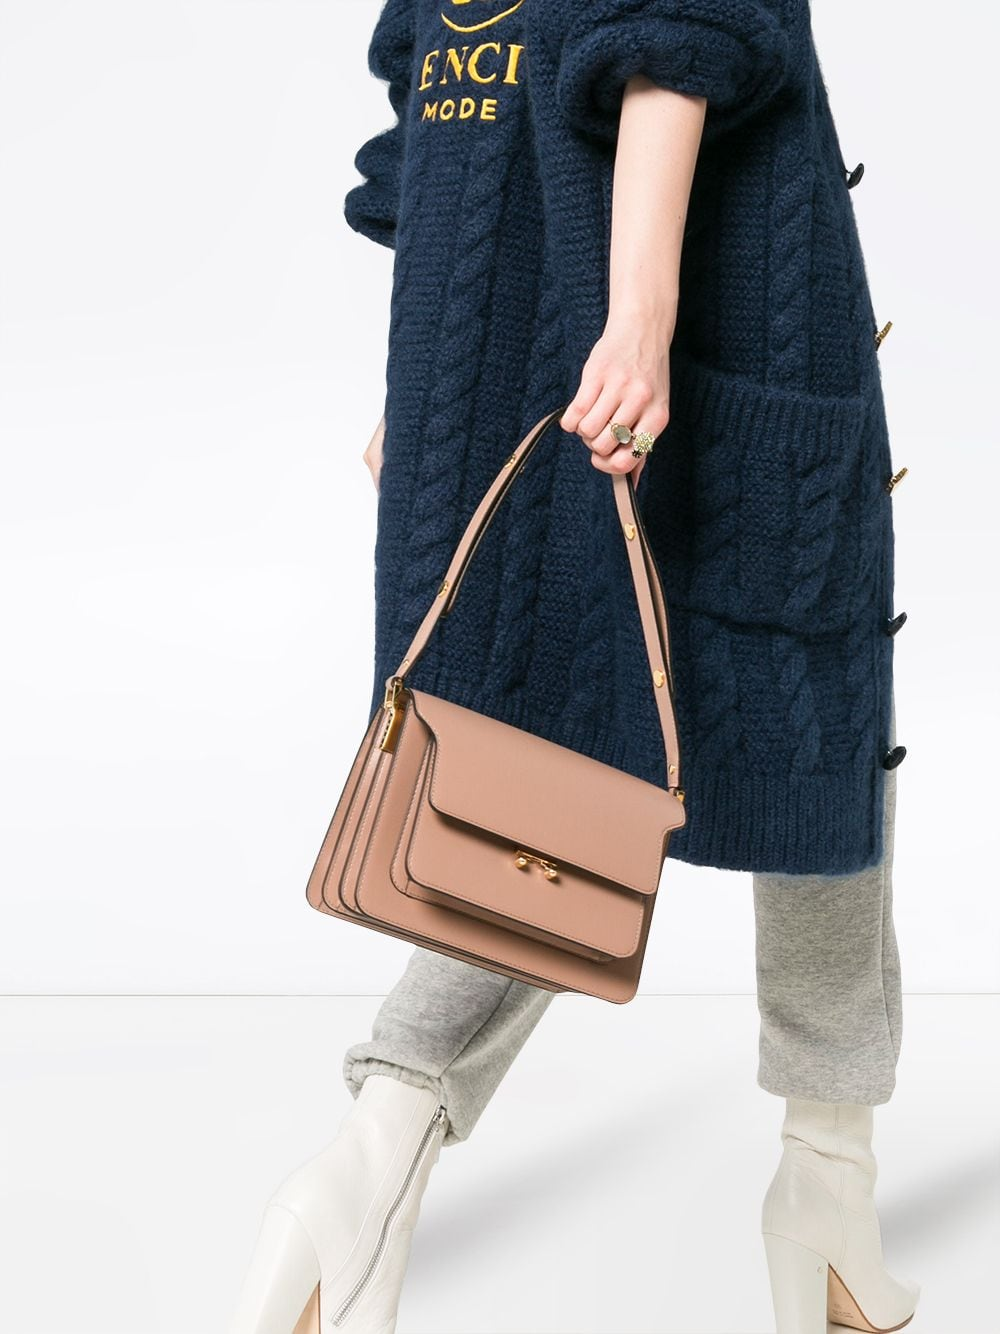 Farfetch: Private Sale! Up t 50% off select styles.